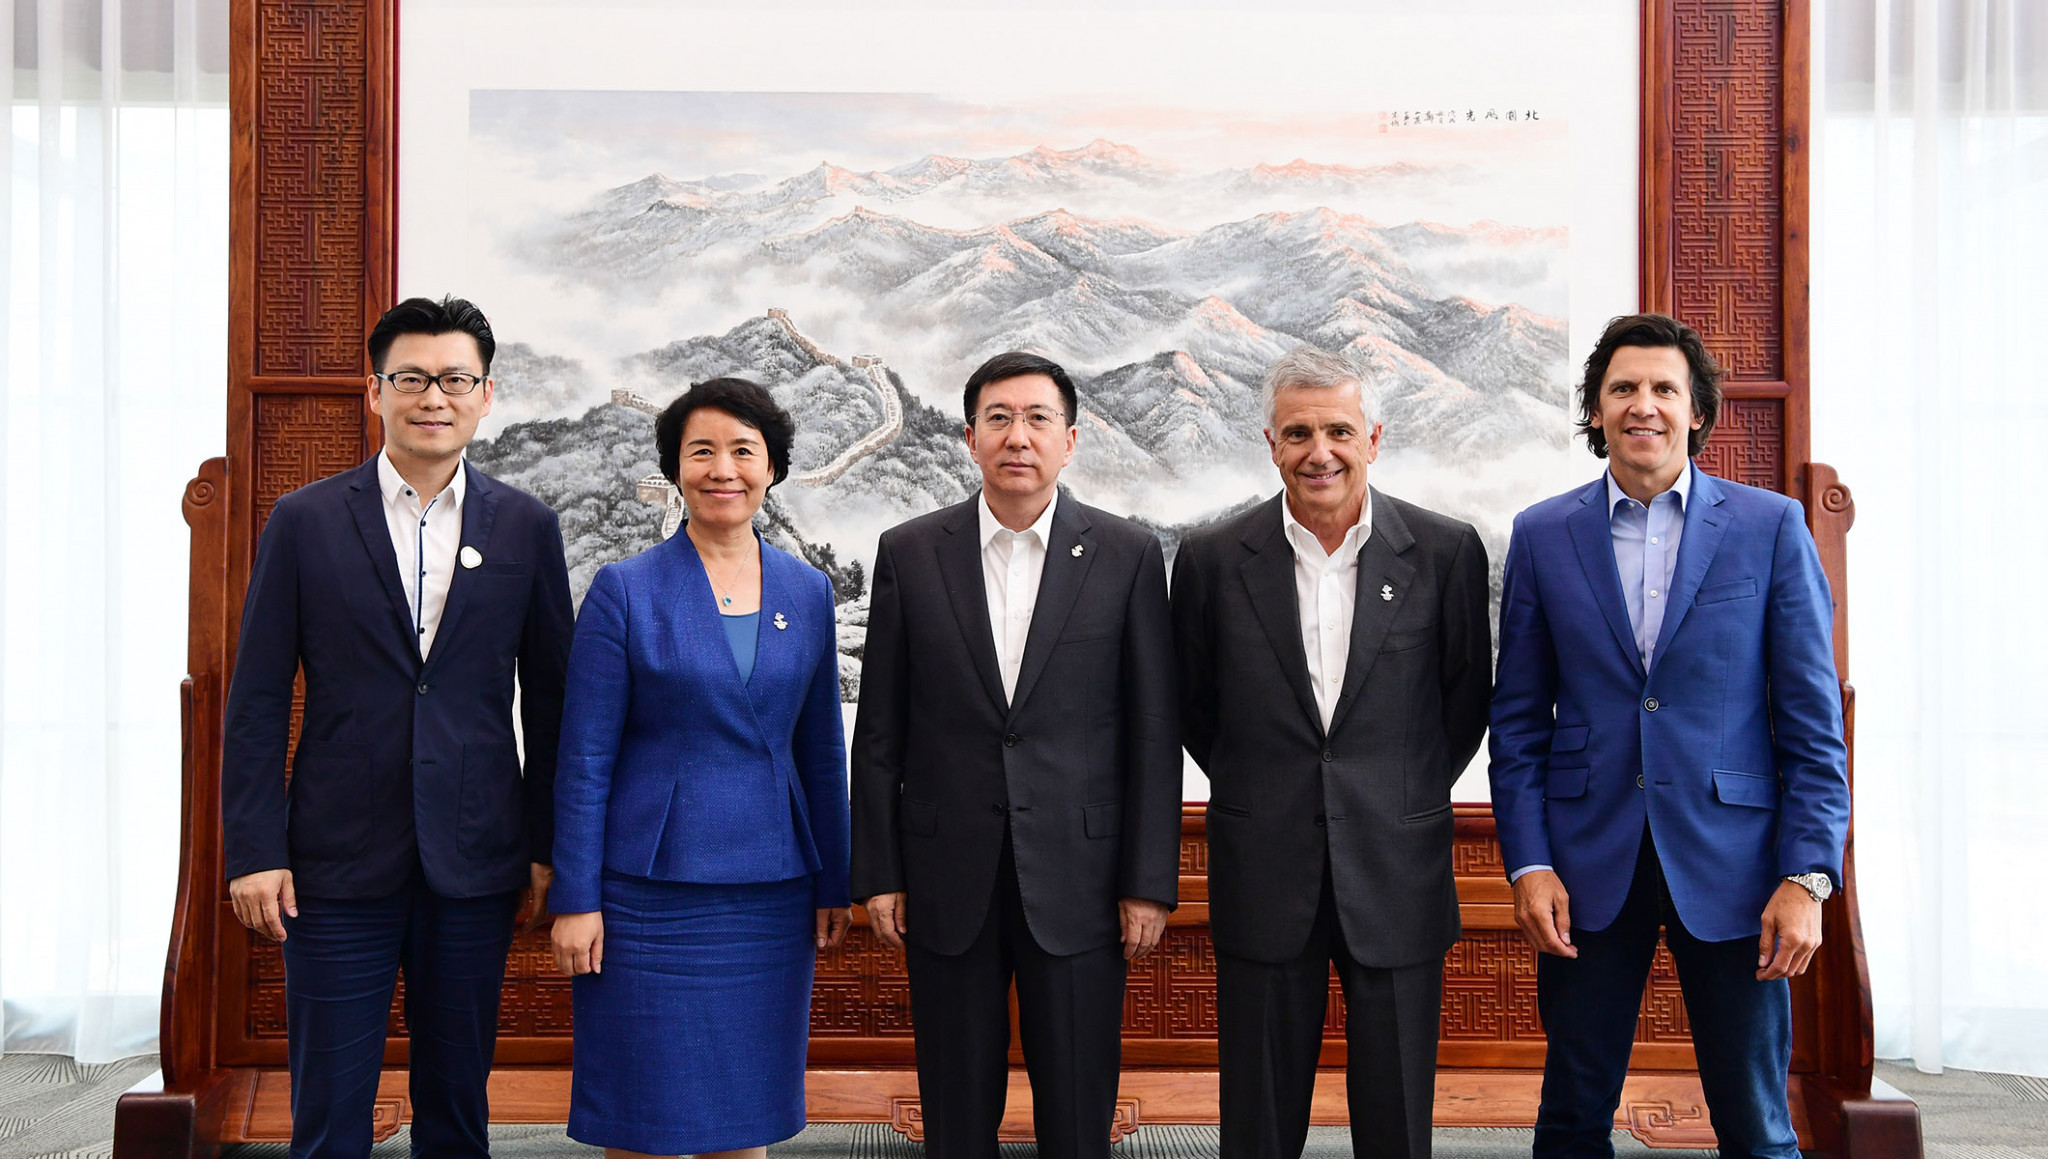 The deal between Beijing 2022, the IOC and Alibaba to provide tickets for the Winter Olympic and Paralympic Games was announced during an inspection visit led by Juan Antonio Samaranch, second right ©IOC